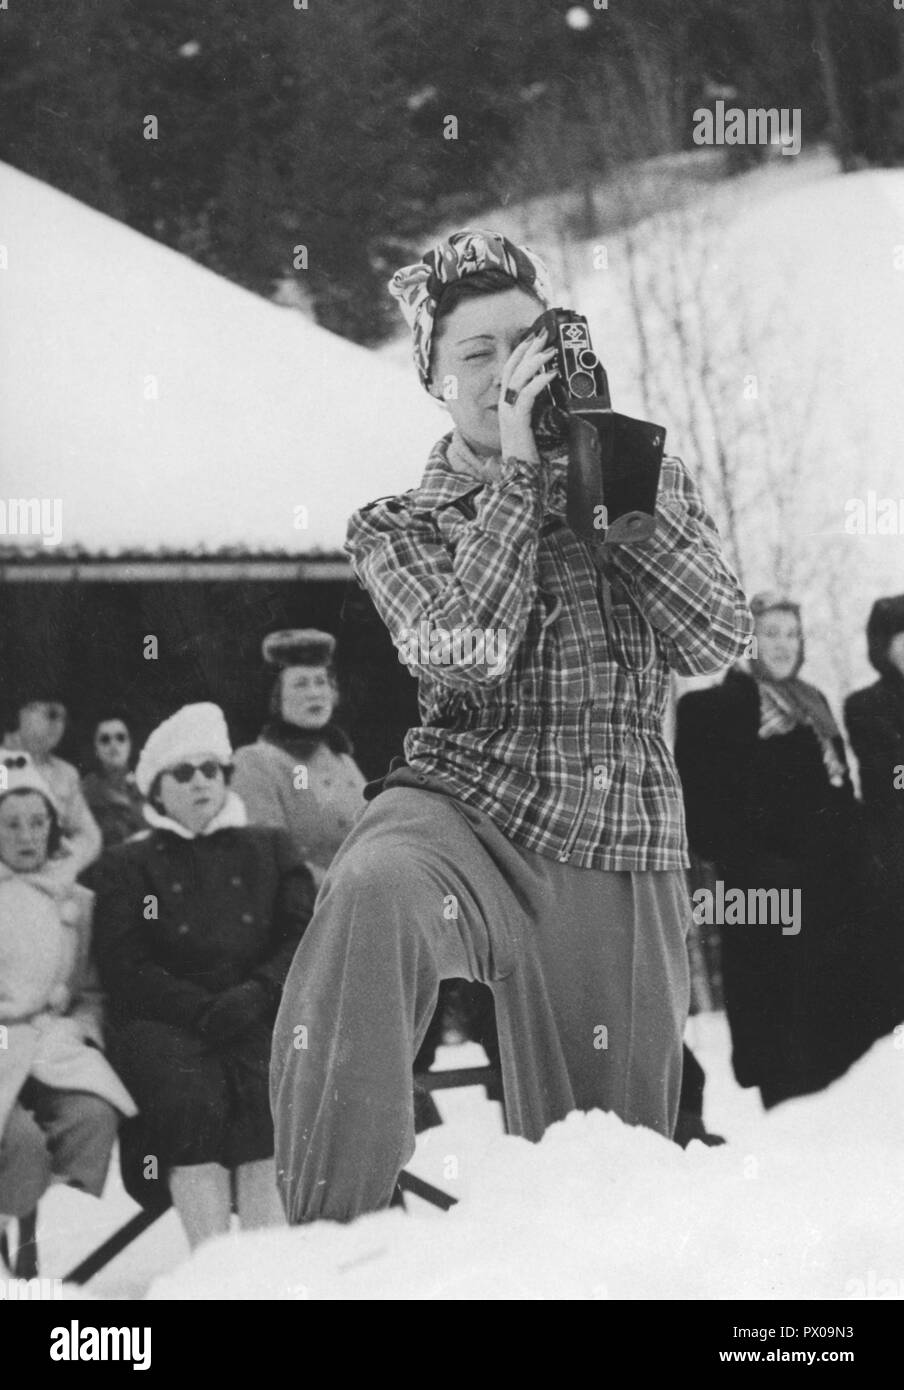 Winter in the 1940s. A young woman is filming the curling championships happening in Åre Sweden. 1940s. - Stock Image